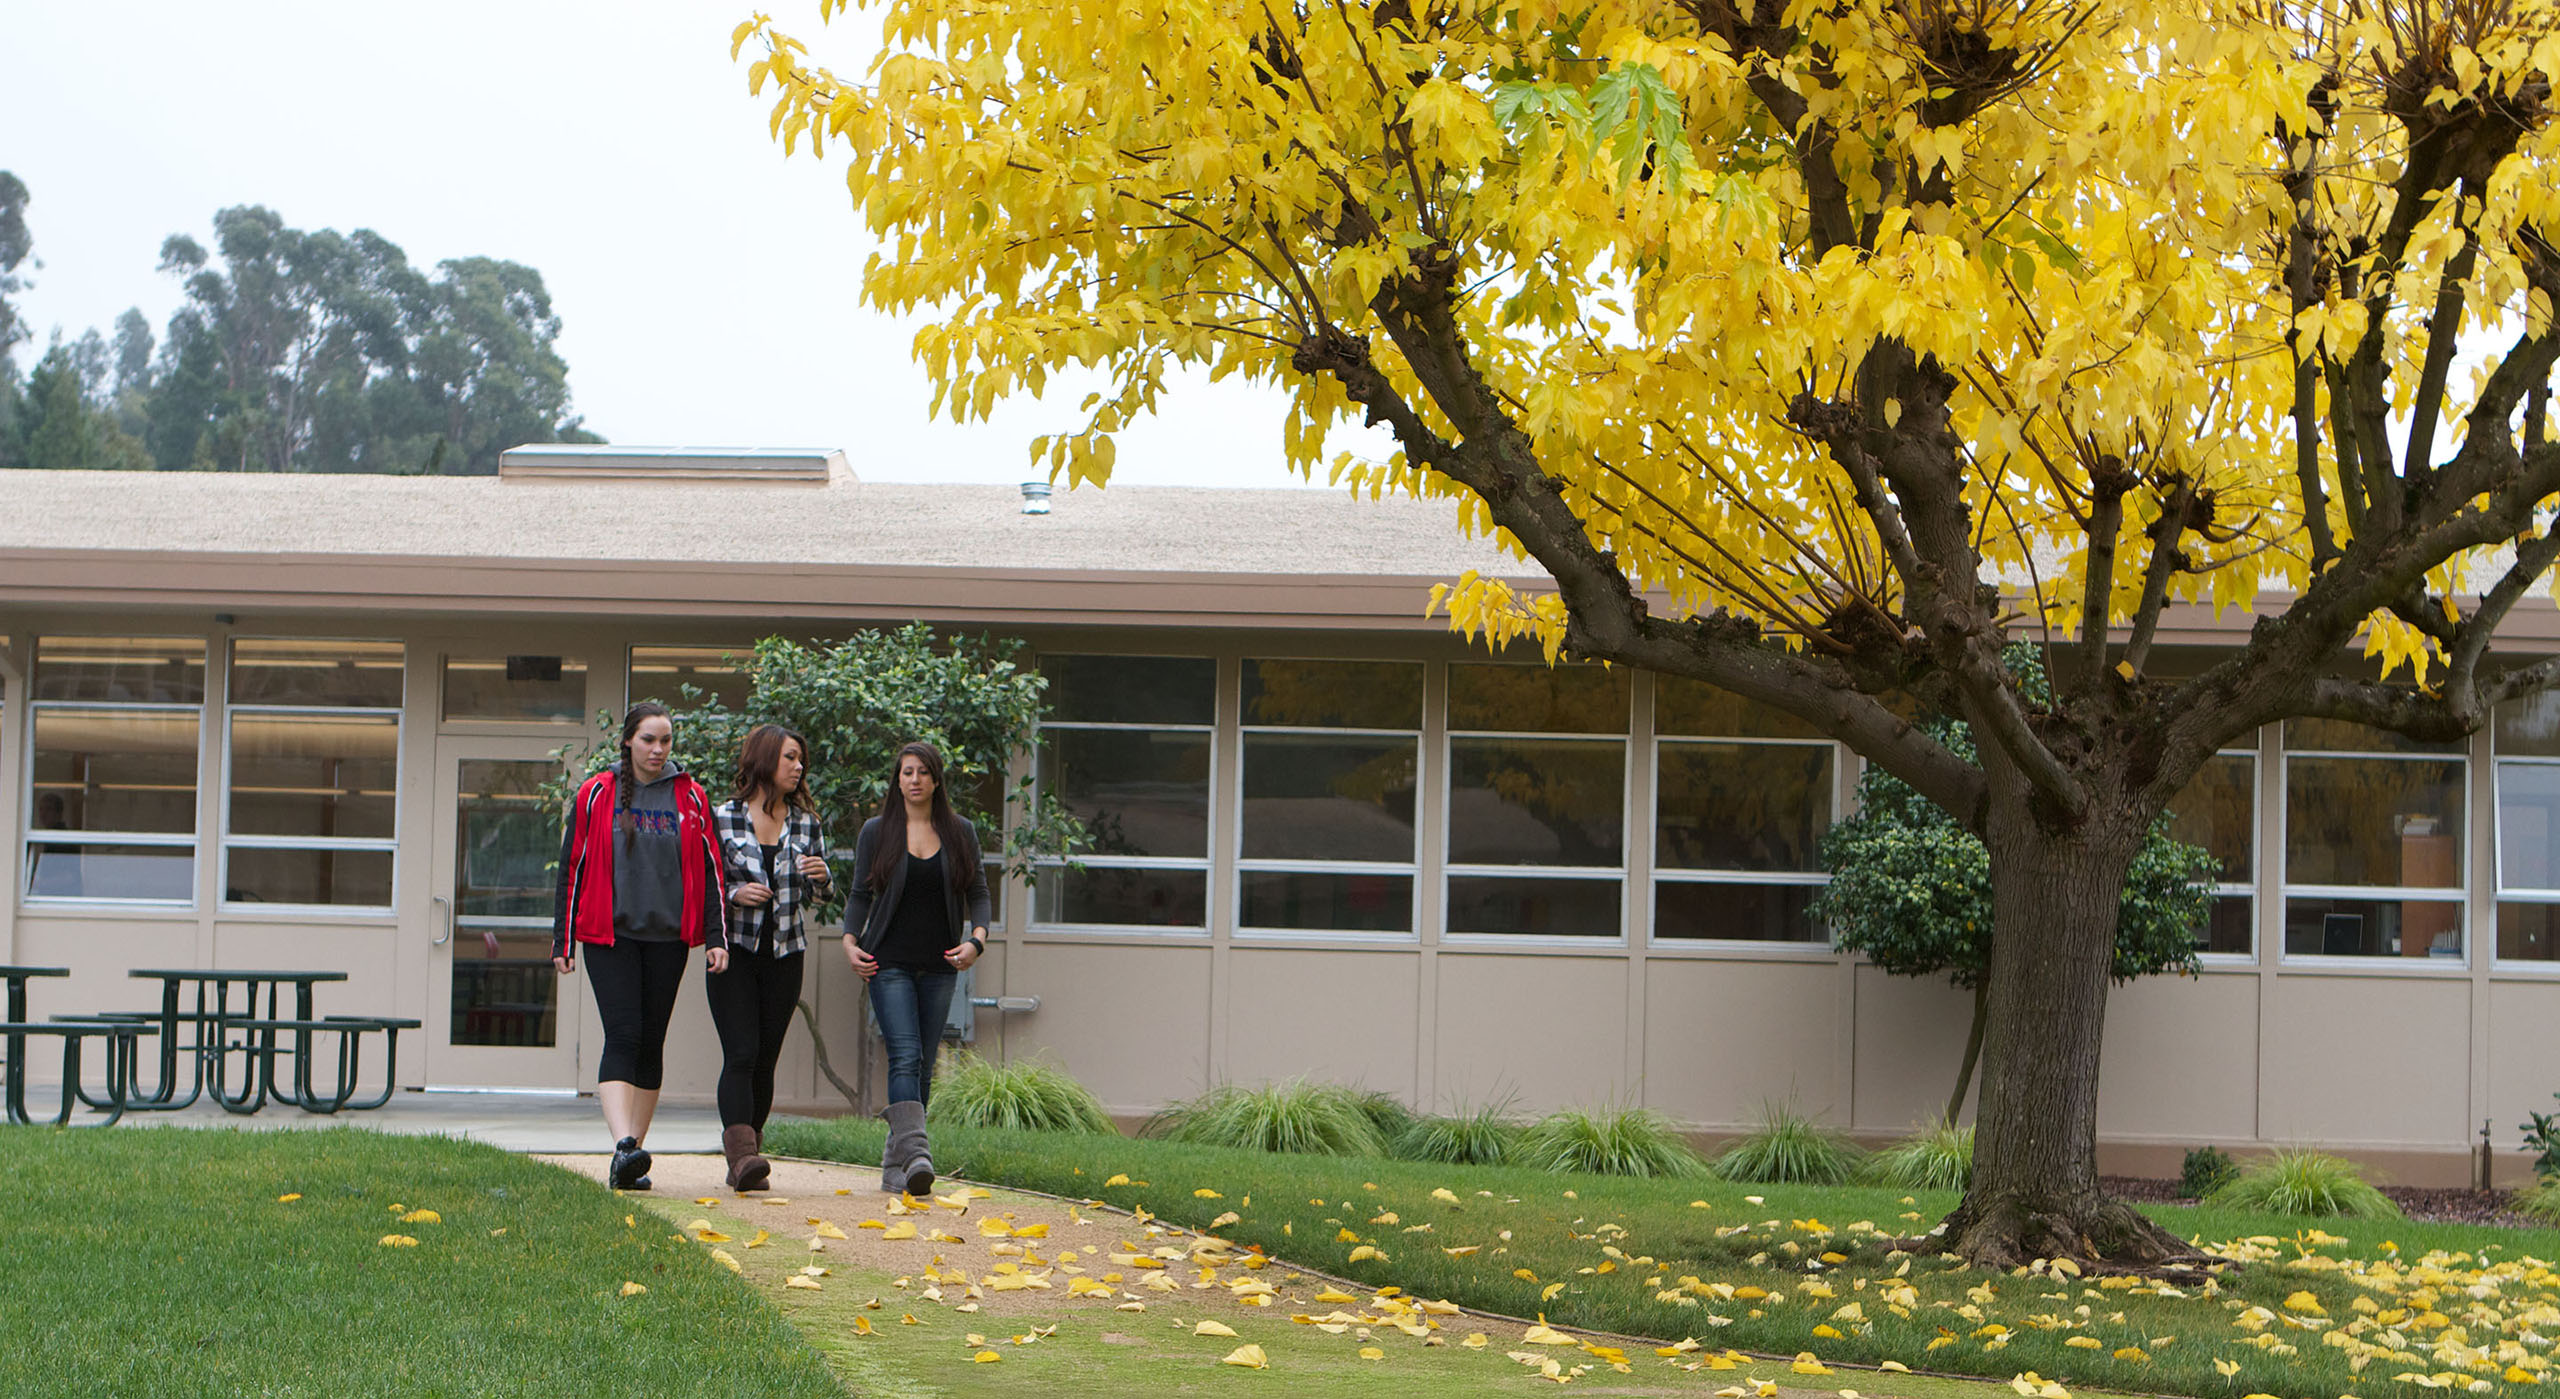 three Holy Names University students walking together away from campus building